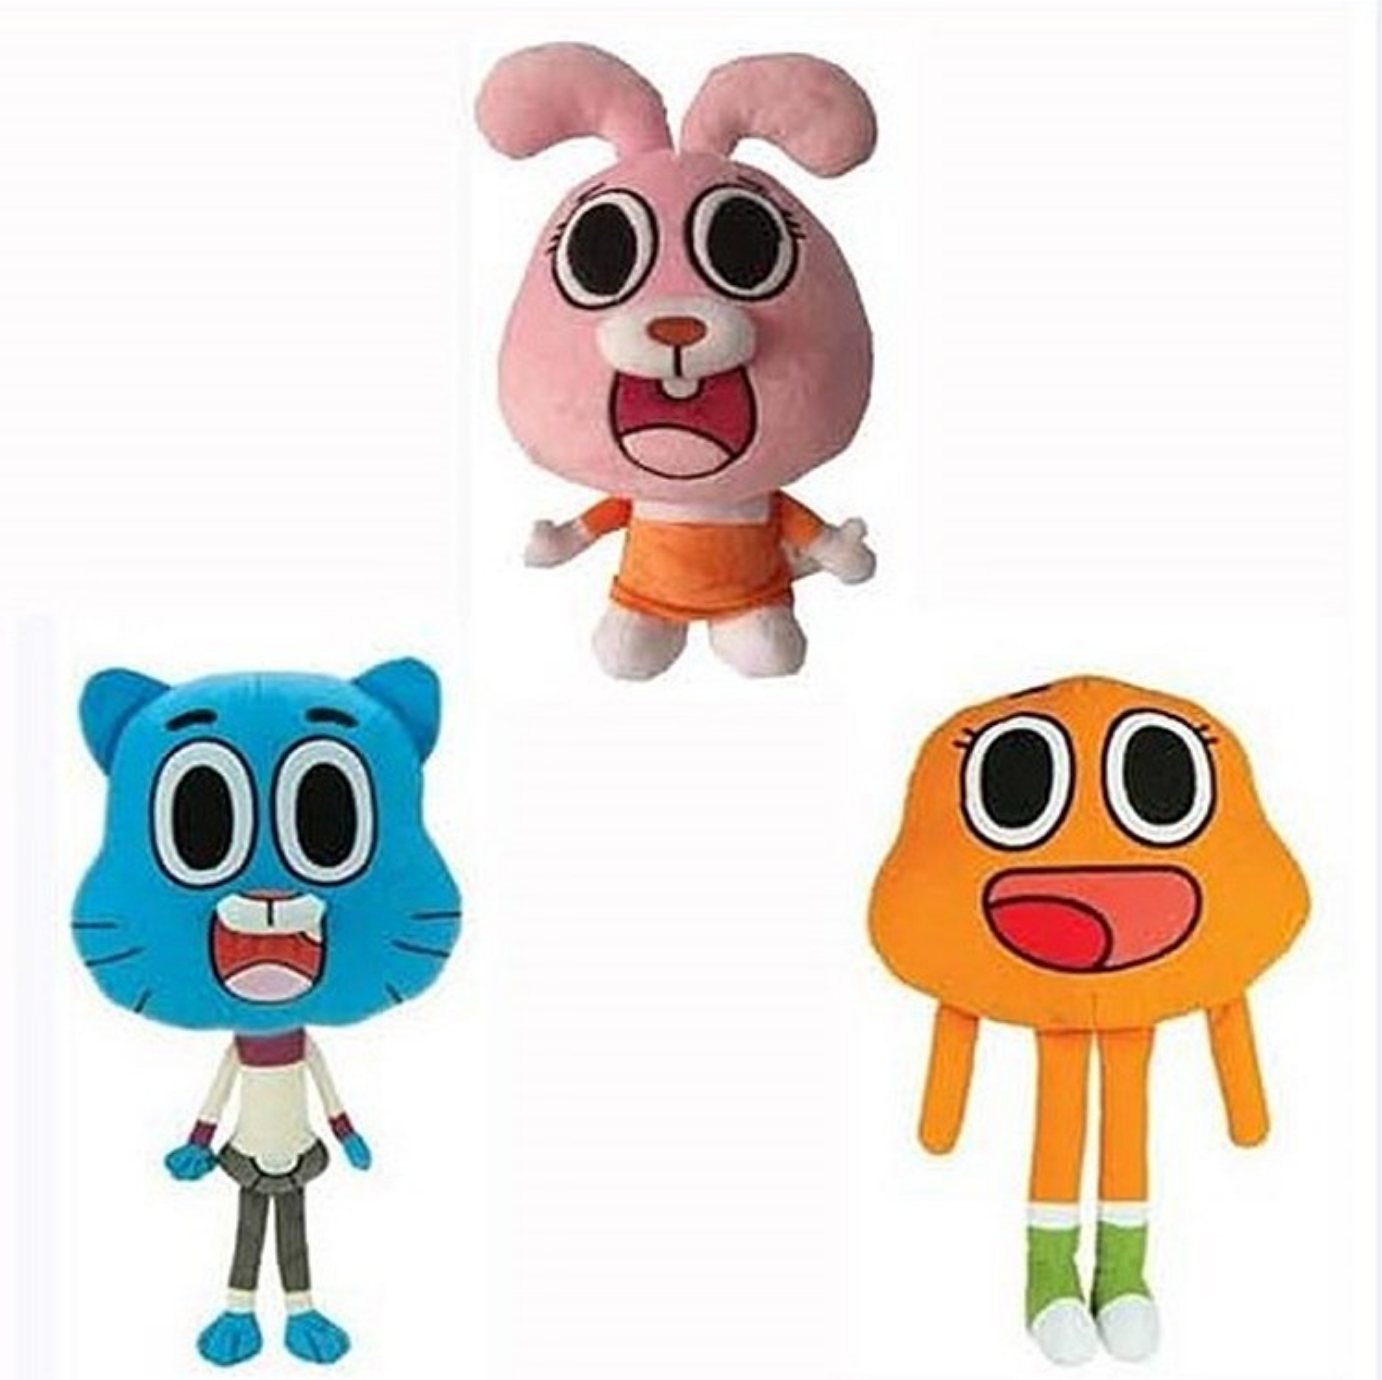 New 25cm Cartoon Amazing World Gumball Darwin Anais Rabbit Plush Doll Toy 1/3pcs Kawaii Cat Plush Toy Children Kid Birthday Gift